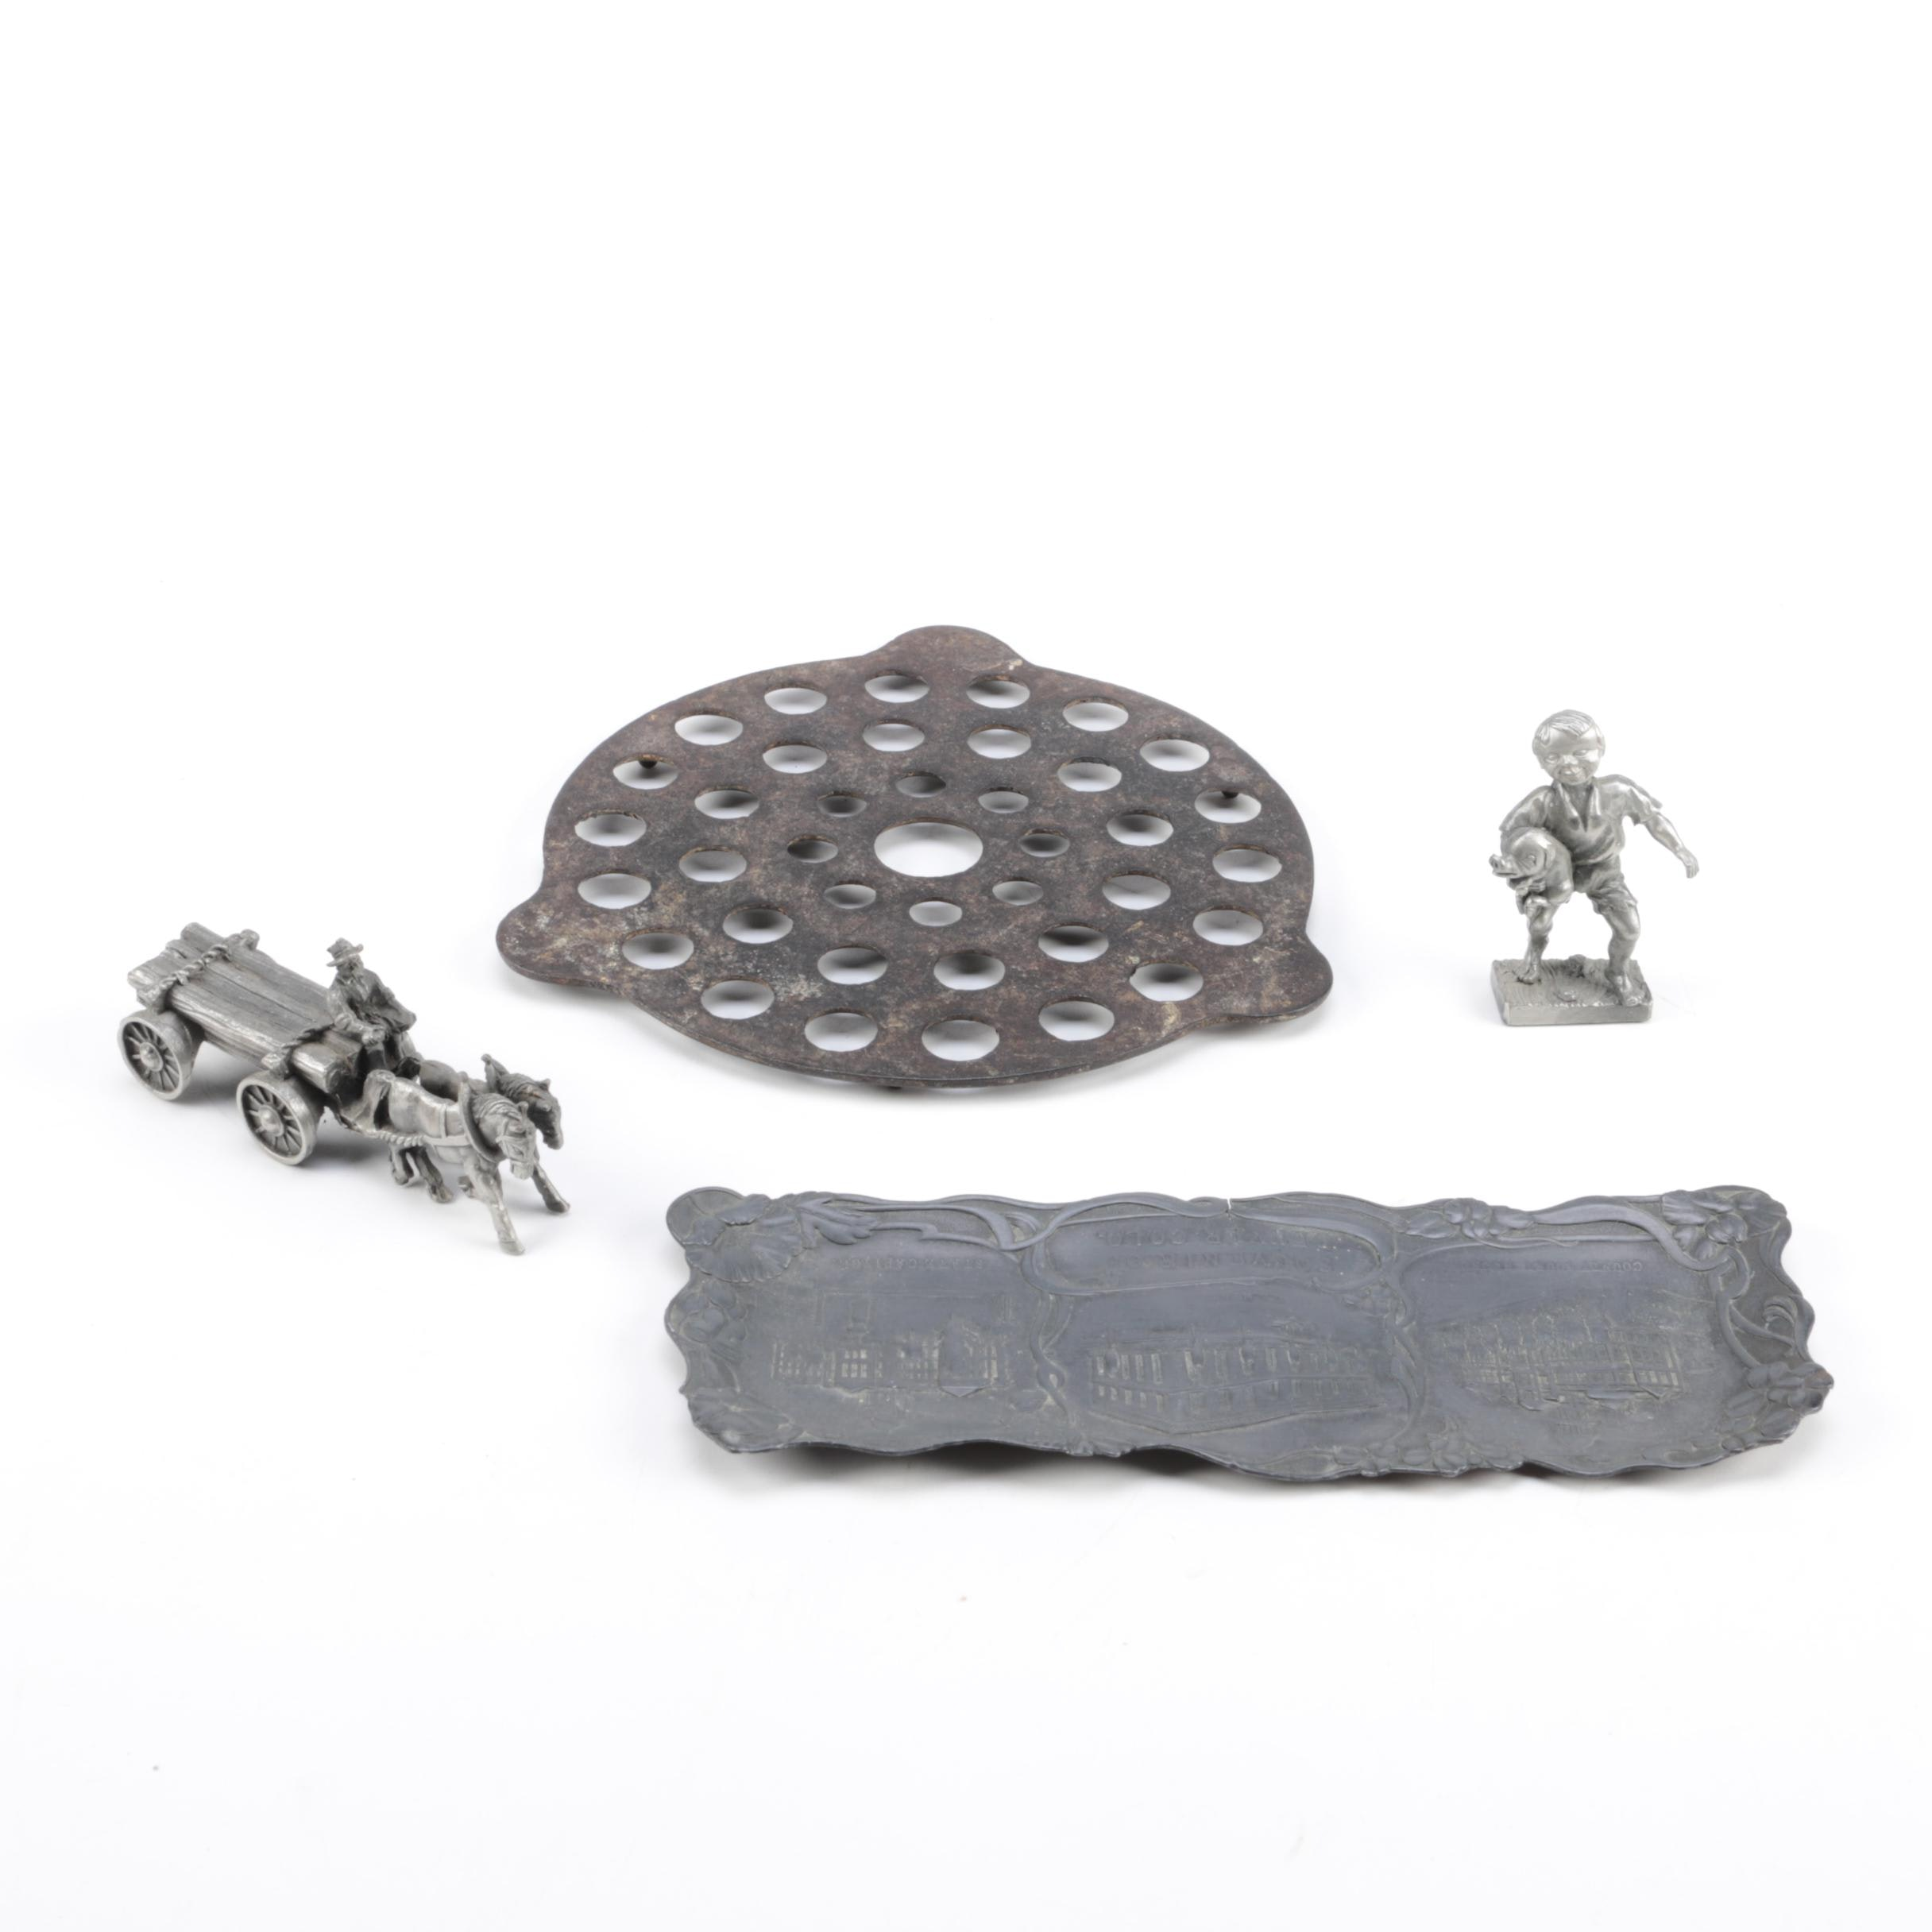 Cast Iron Trivet and Pewter Tray and Figurines